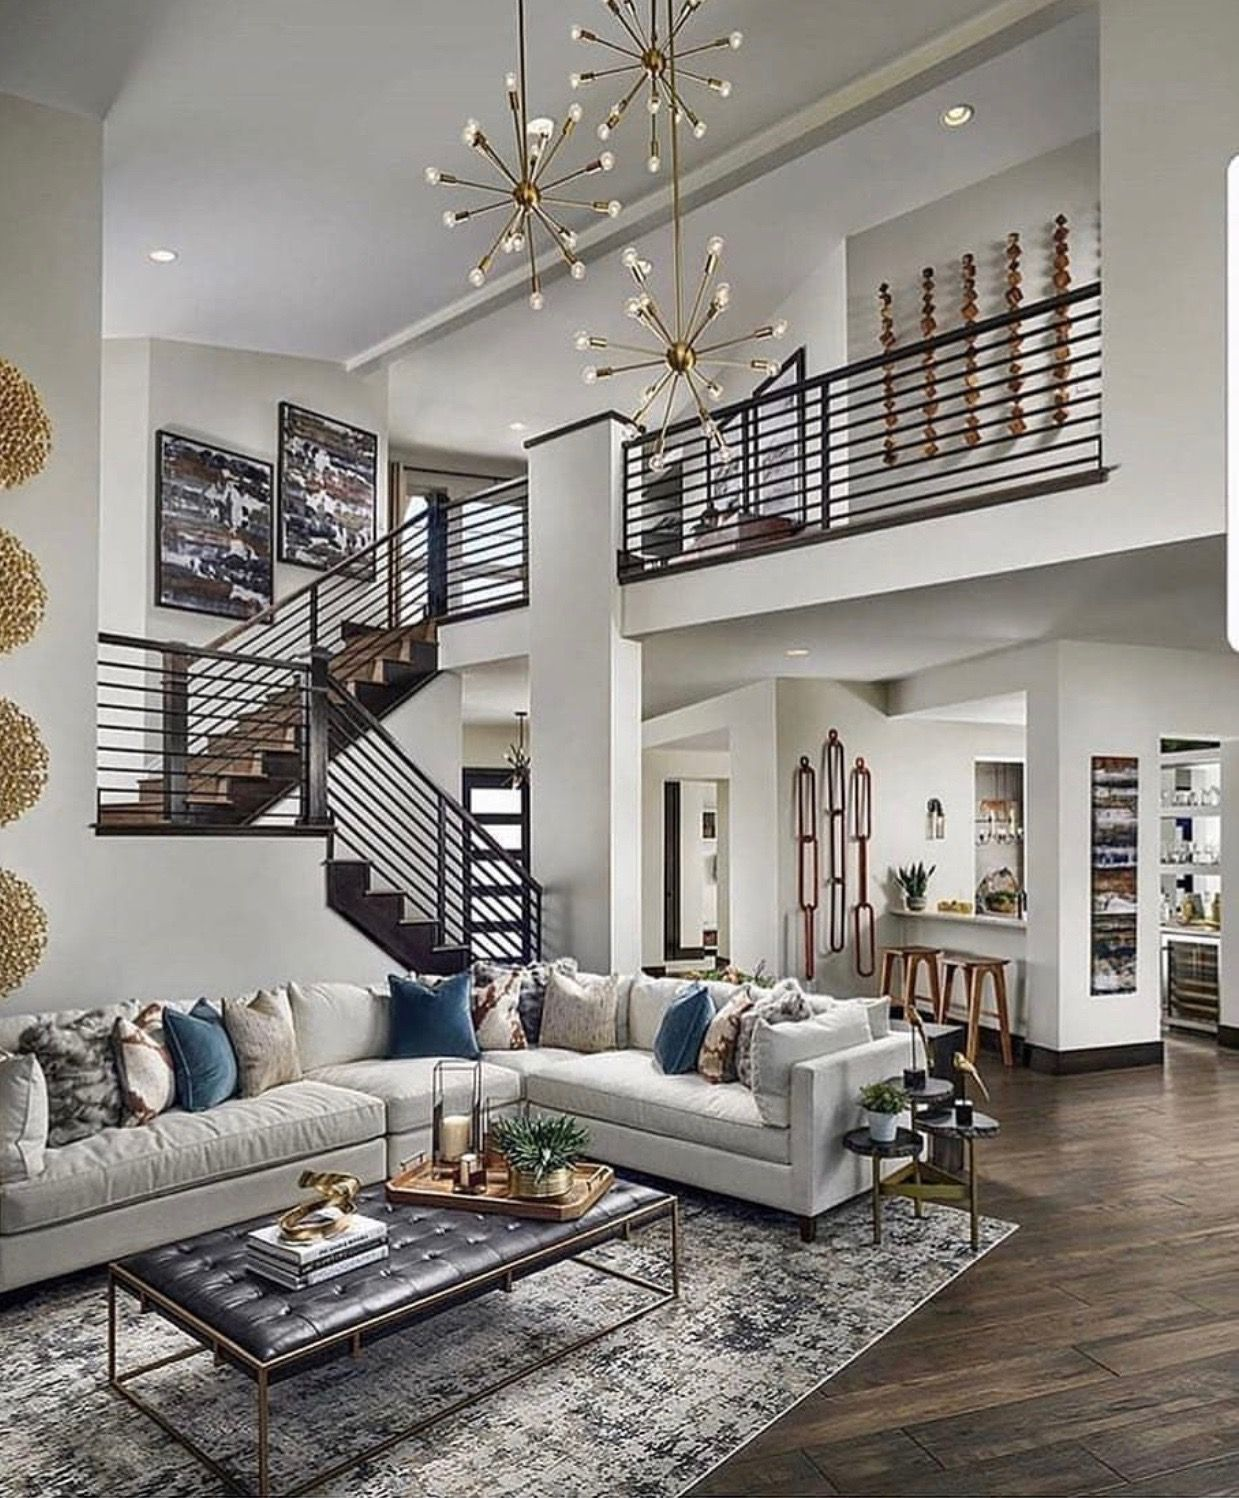 Love Most Of It Lol I Think The Giant Chains On The Wall By The Stools Are Over T Contemporary Decor Living Room Luxury House Designs Modern House Design